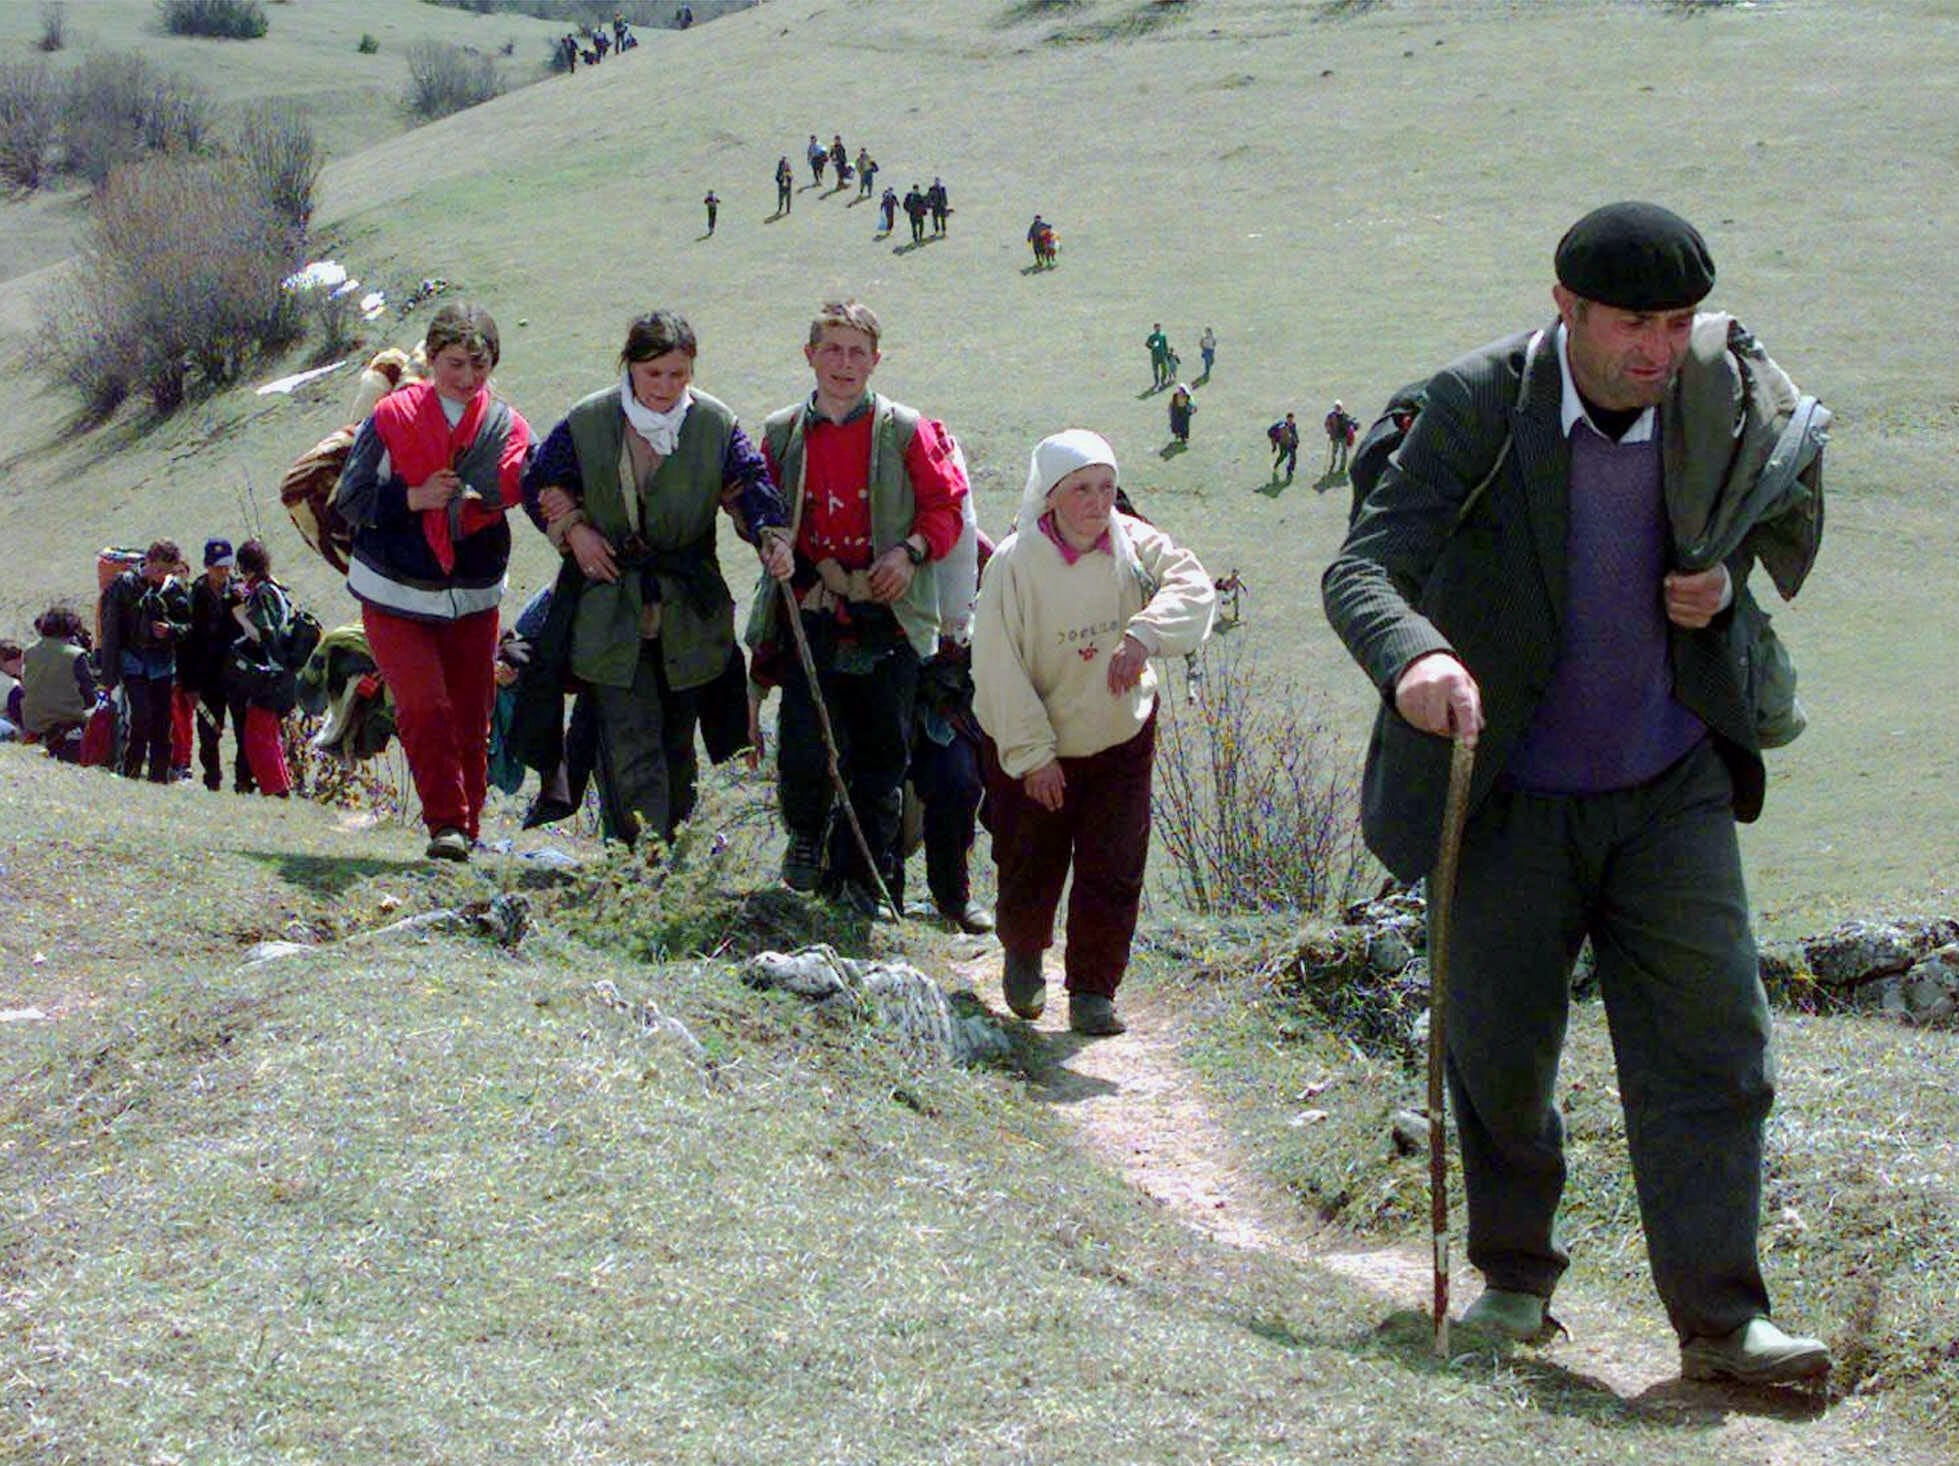 Kosovo refugees from several villages near Istok walk the muddy paths of the Montenegrin village of Jablanica, near the border of Serbia and Kosovo, on their way to the refugee camps of Rozaje, Thursday, April 8, 1999. More than 35,000 Kosovars have been flooding Montenegro since NATO airstrikes in Yugoslavia.